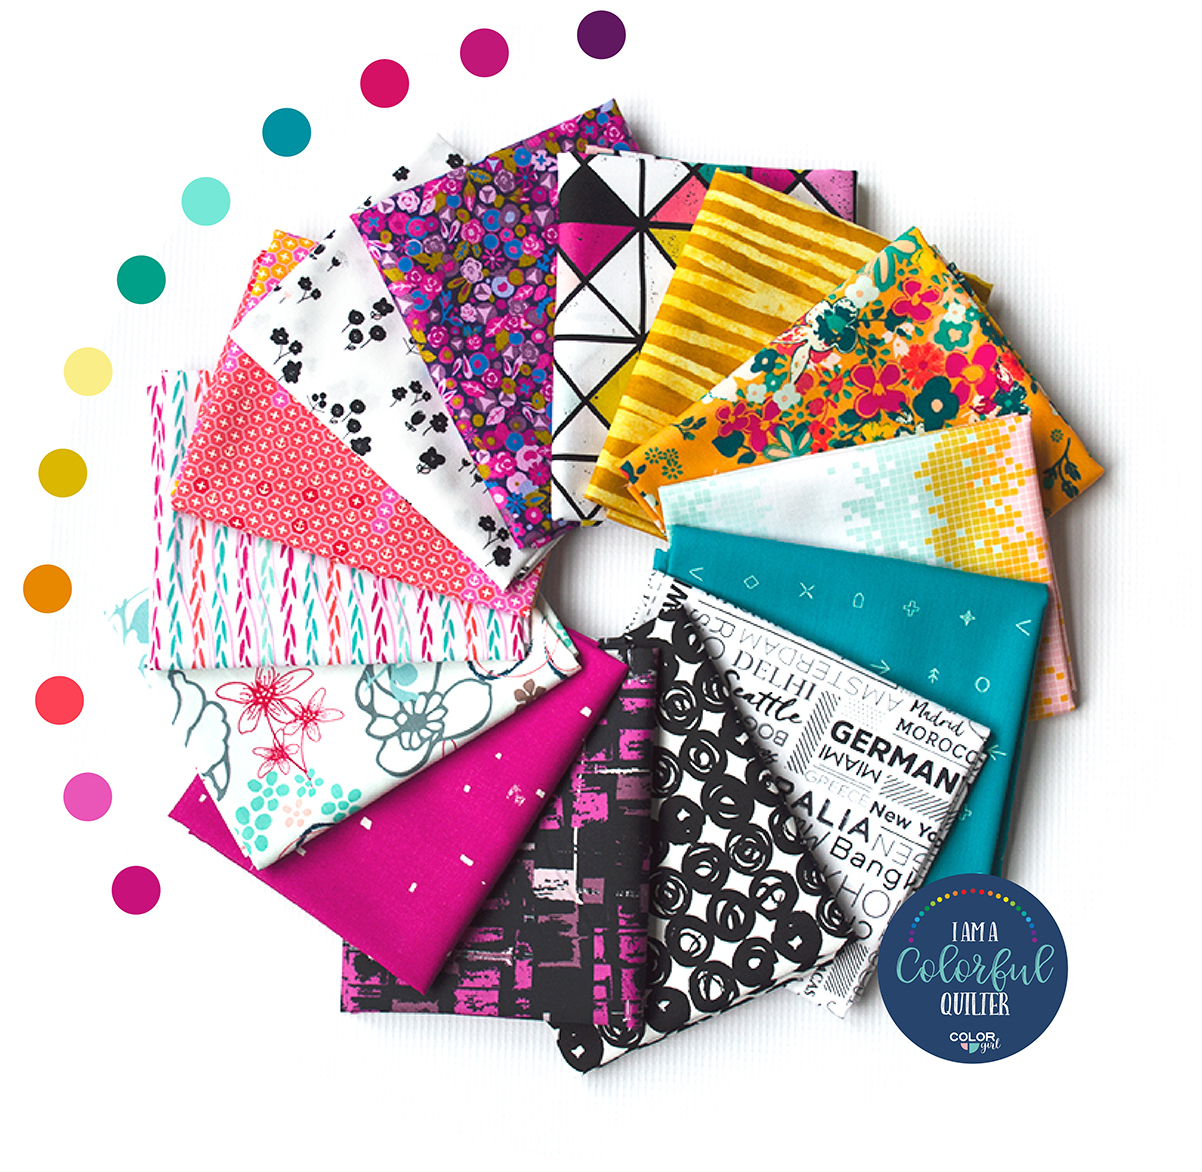 Sew Colorful Edgy Bundle